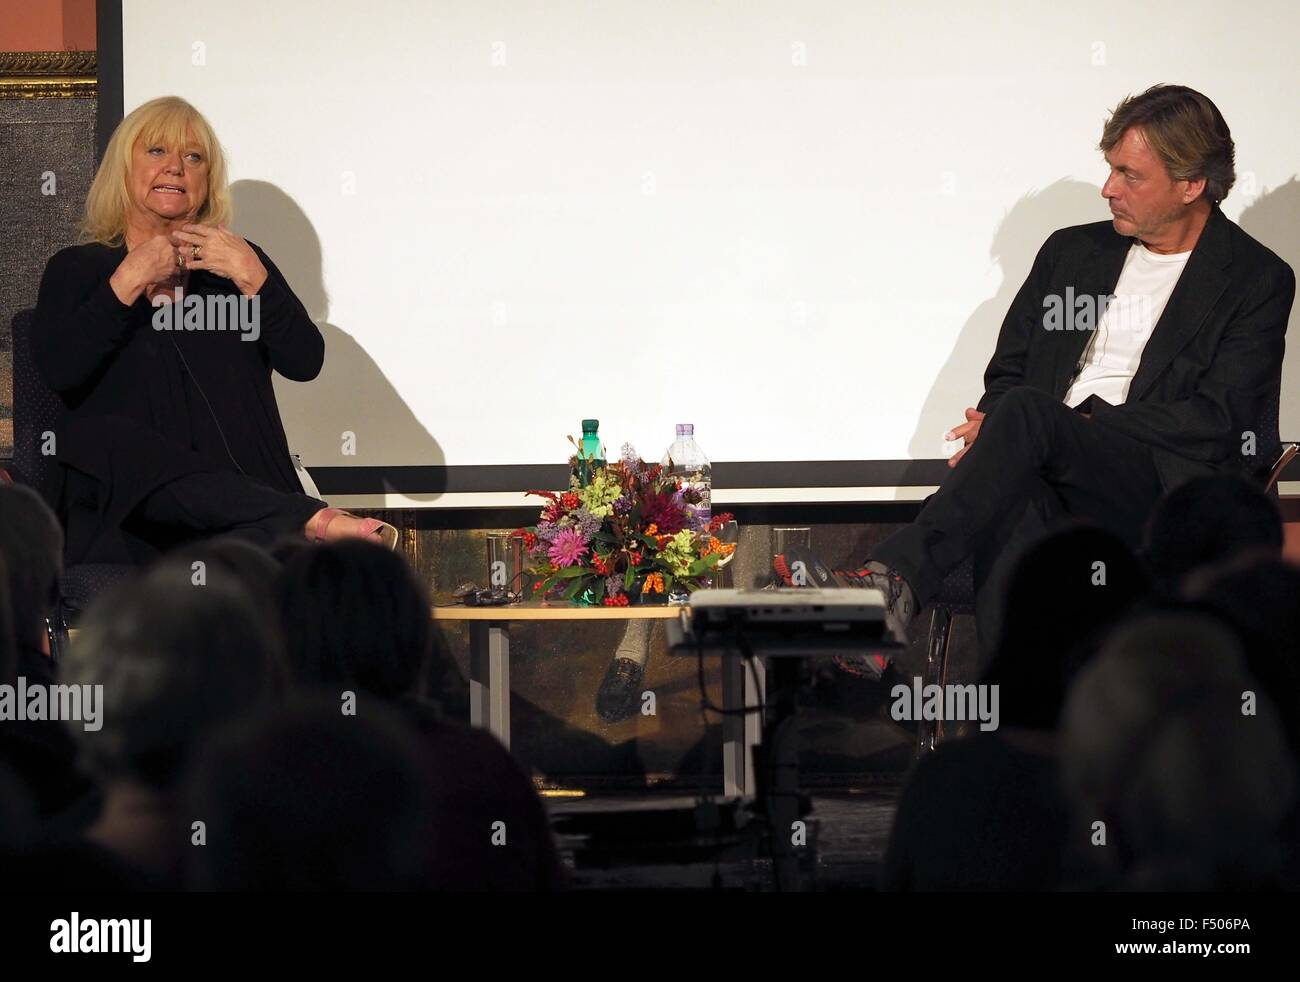 Richard Madeley interviews his wife and author Judy Finnigan at Dorchester Literary Festival, Dorset, Britian, UK - Stock Image